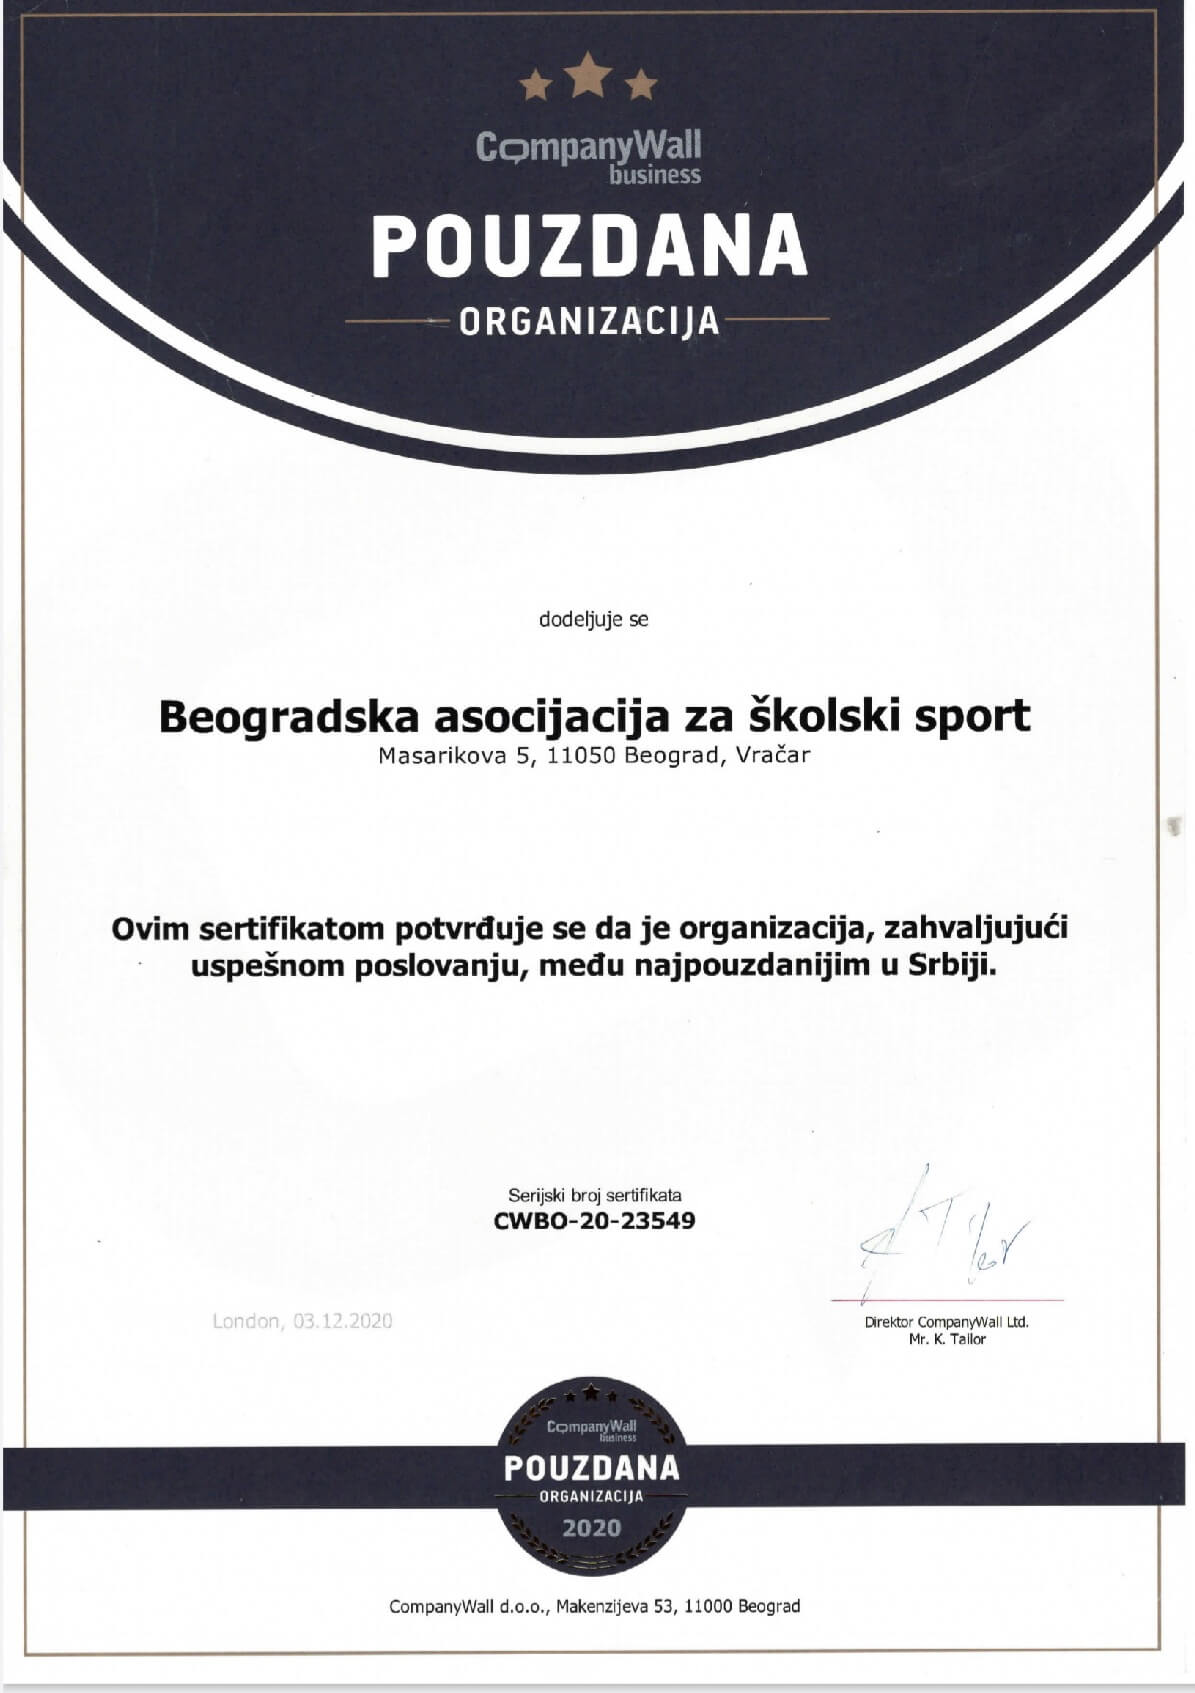 EVALUATION OF THE WORK OF THE BELGRADE ASSOCIATION FOR SCHOOL SPORTS BY THE LONDON COMPANY WALL BUSINESS AGENCY IN 2020 AND AWARDING OF THE CERTIFICATE OF EXCELLENCE OF EXCELLENCE